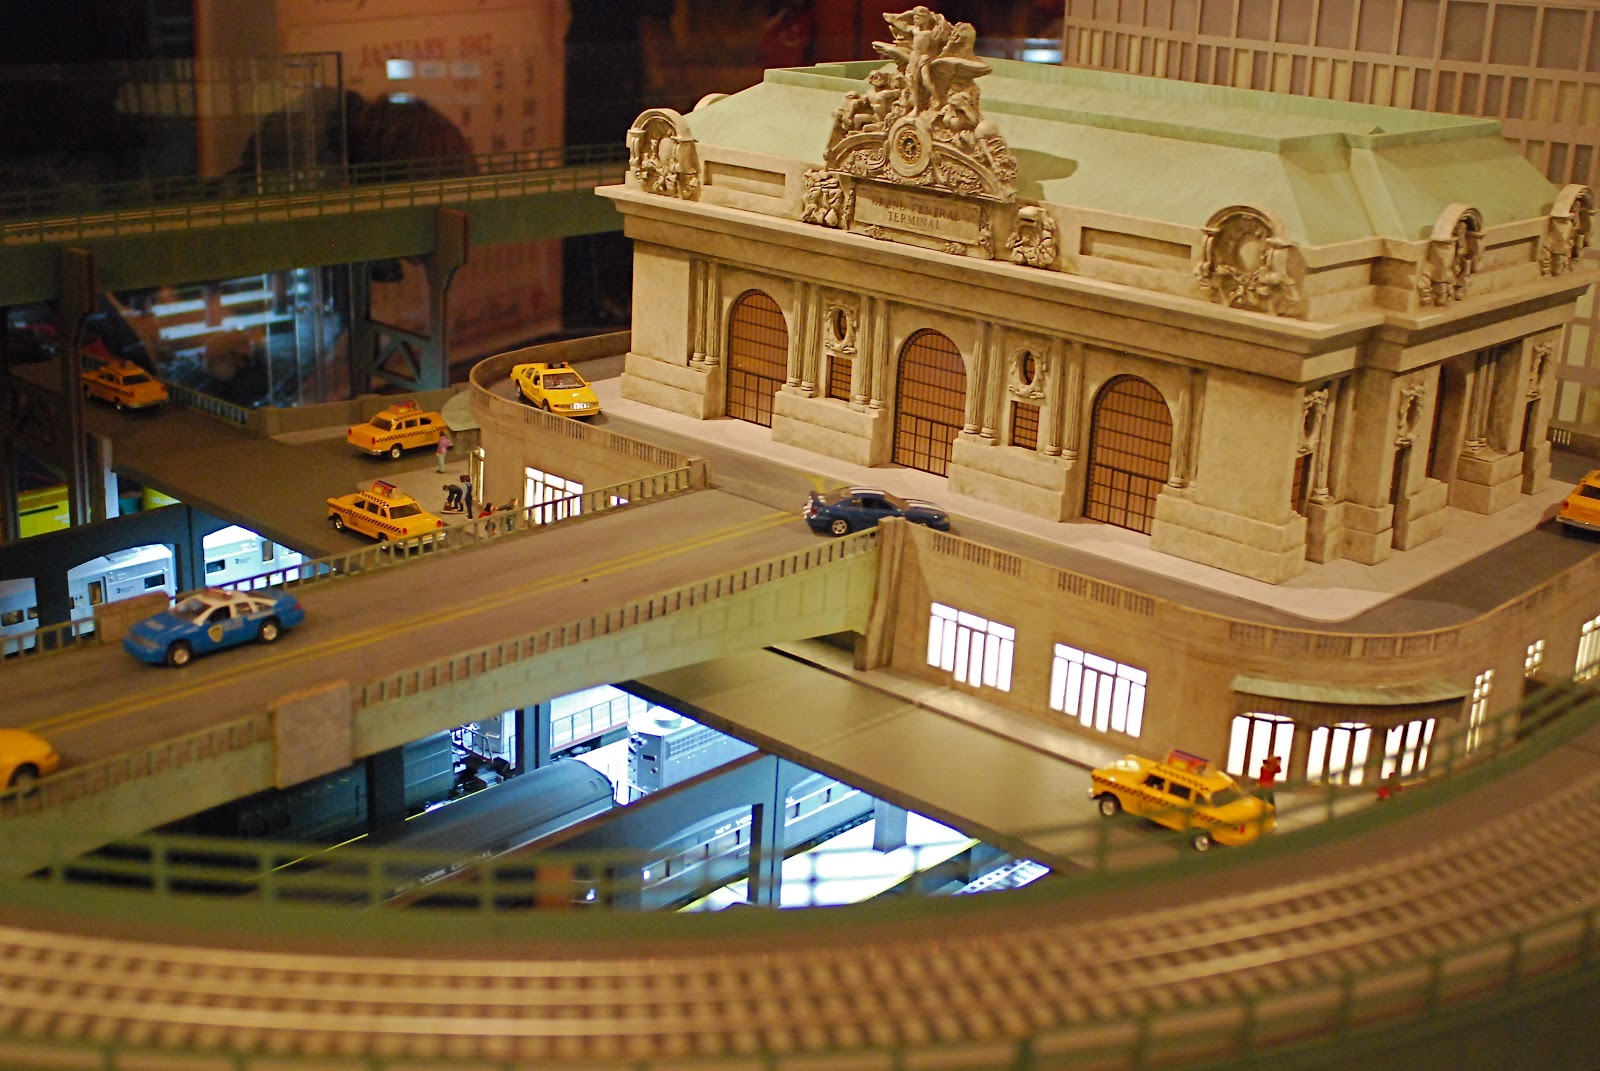 Nyc nyc 2012 grand central holiday train show at the ny for Ny transit museum store